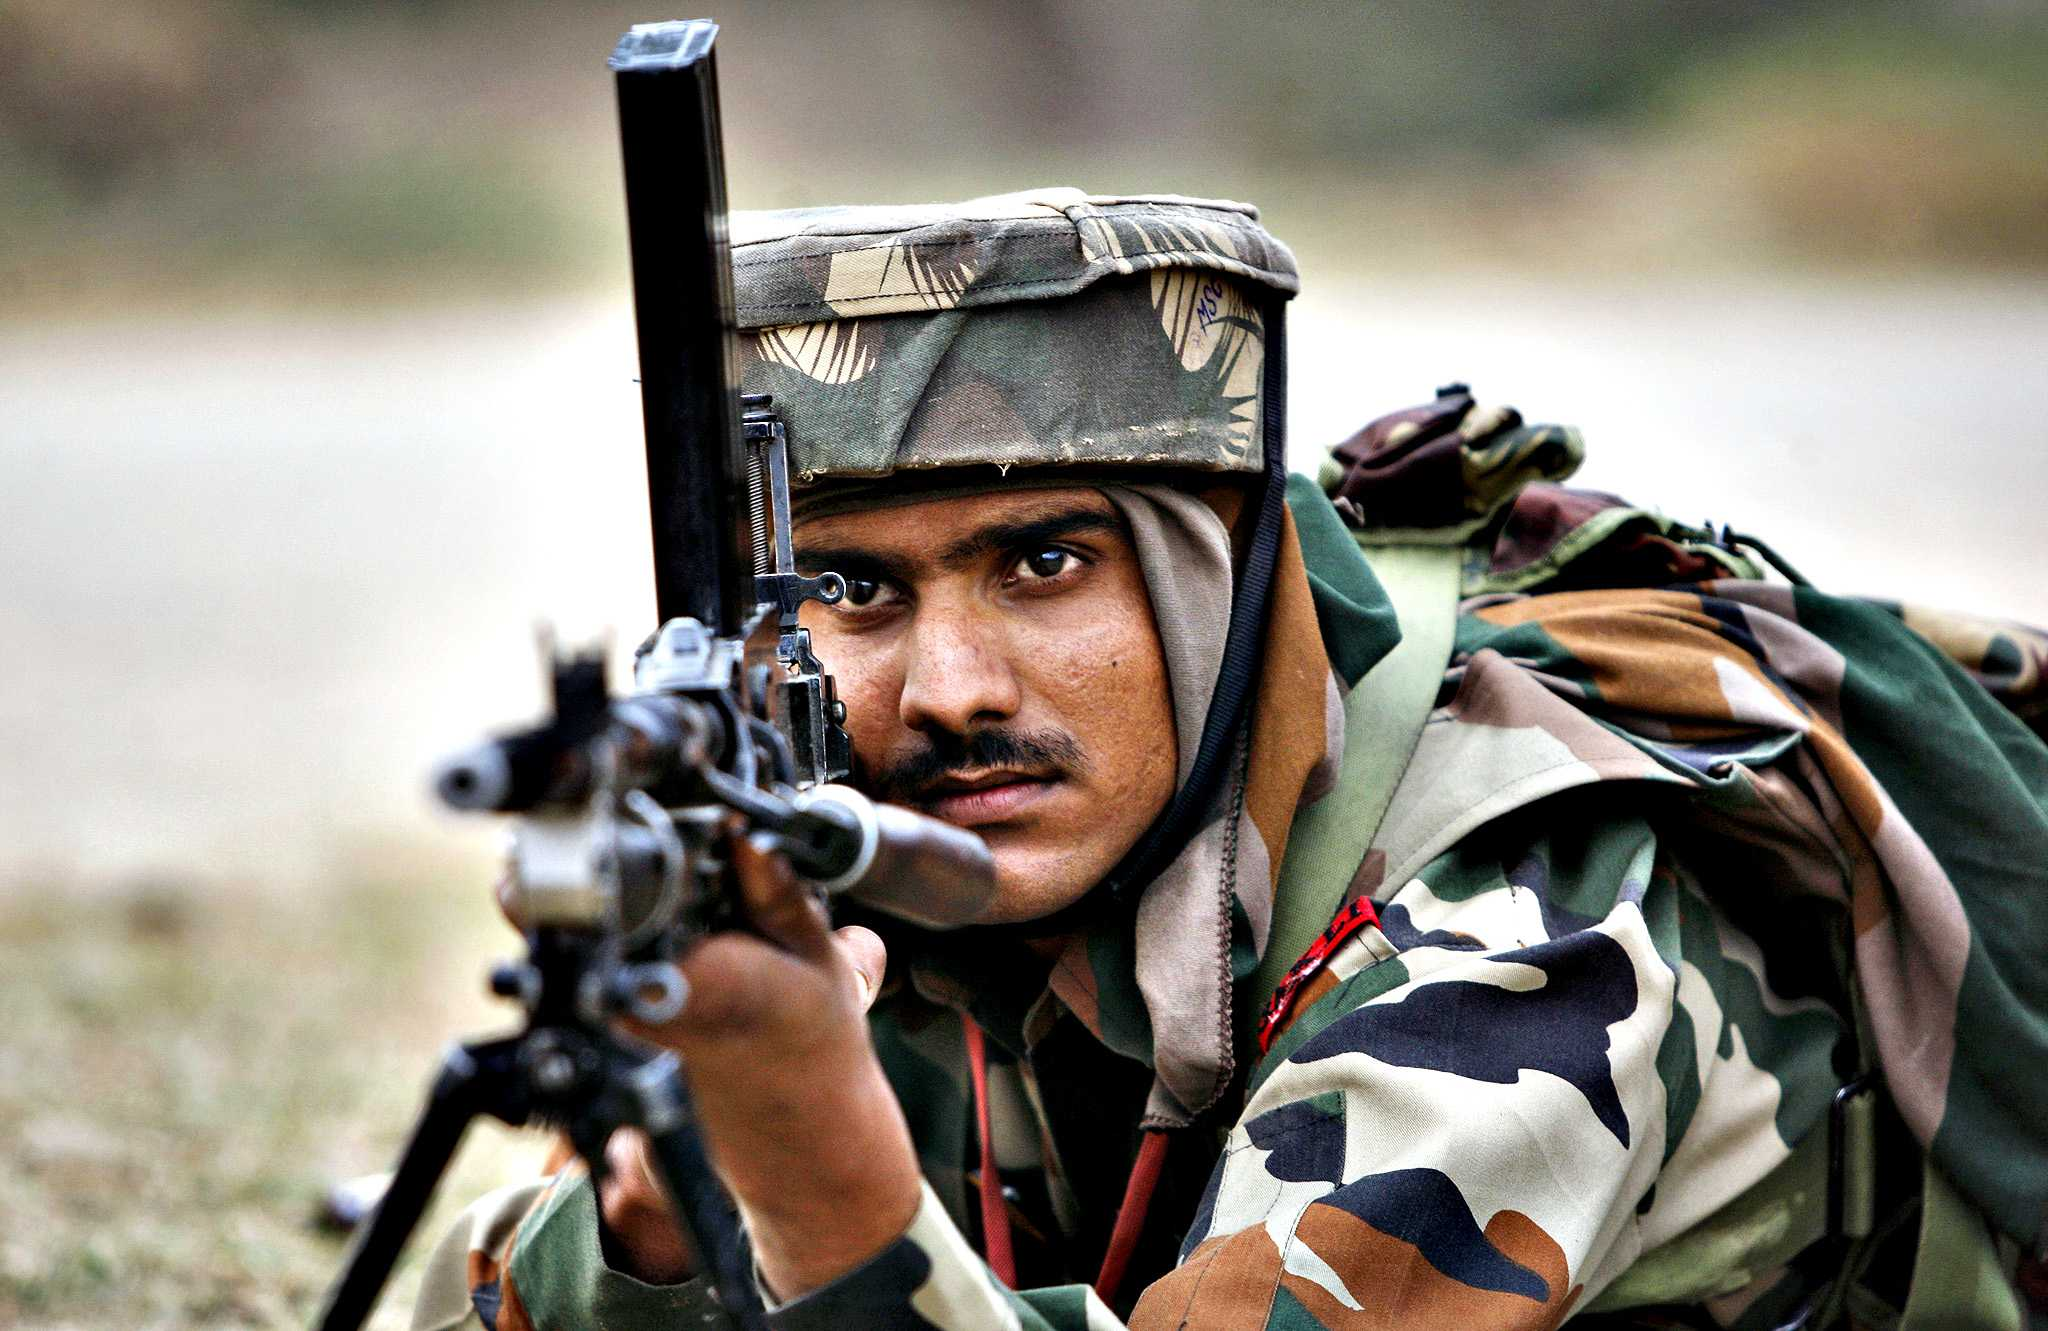 An Indian Army soldier